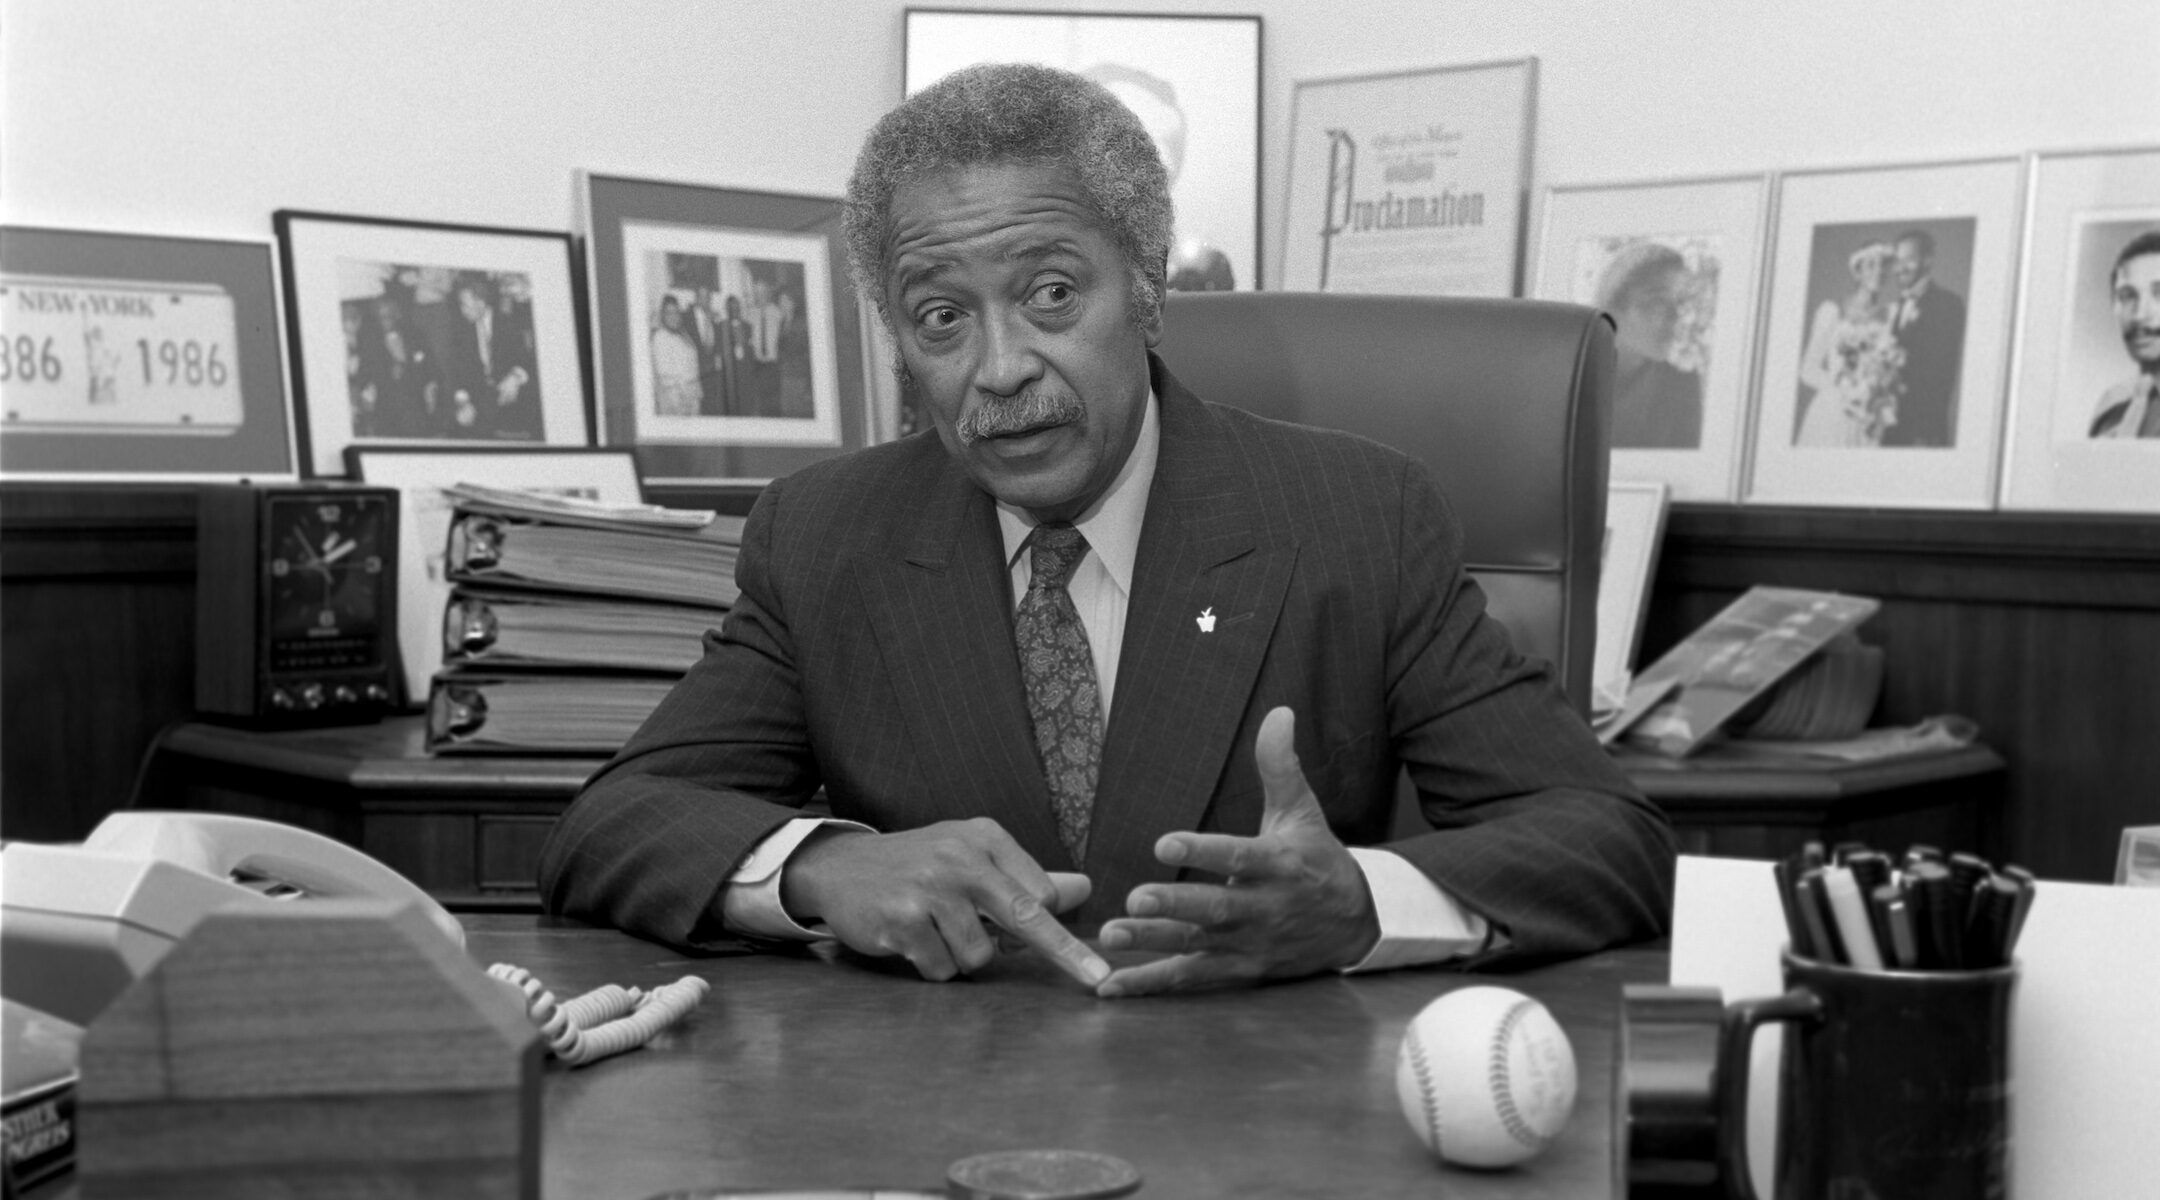 David Dinkins, pictured here in 1986, was elected New York City's first black mayor in 1989. (Karjean Levine/Getty Images)